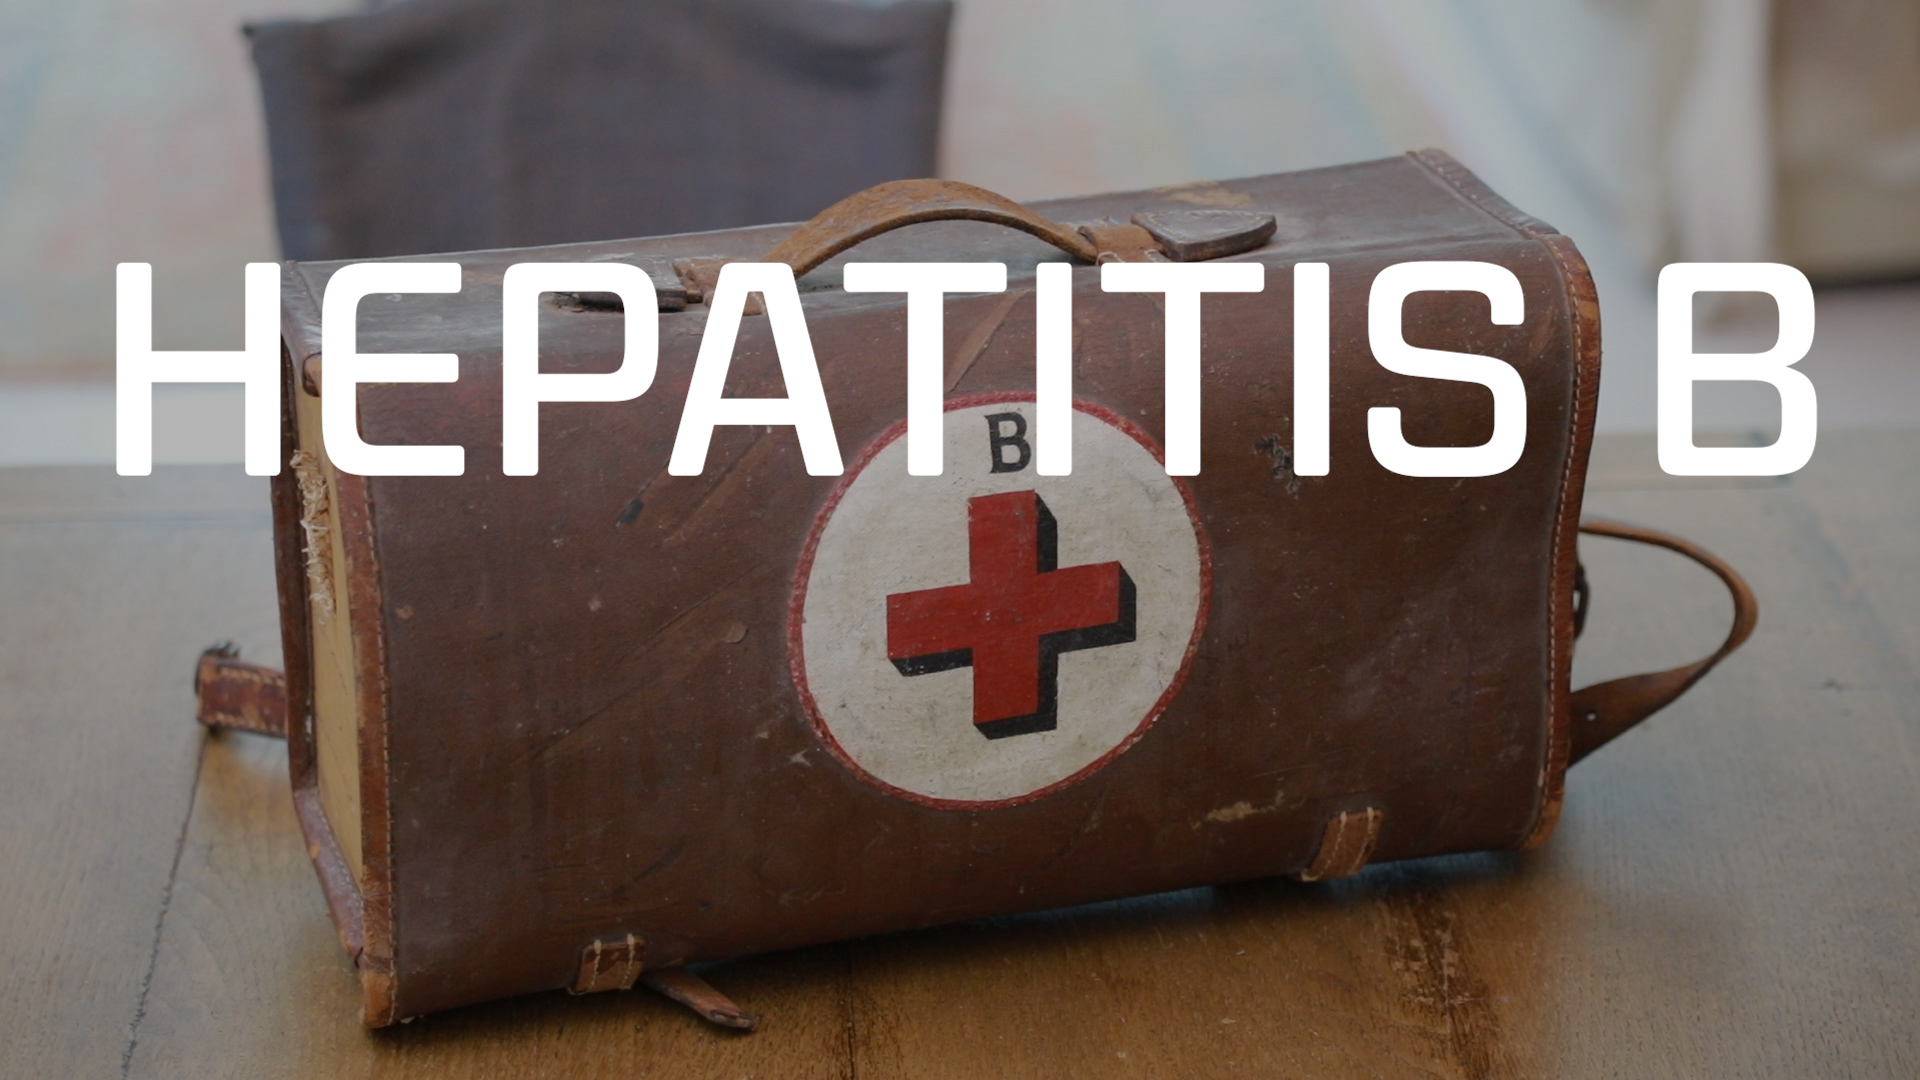 Bekijk de video: Hepatitis B